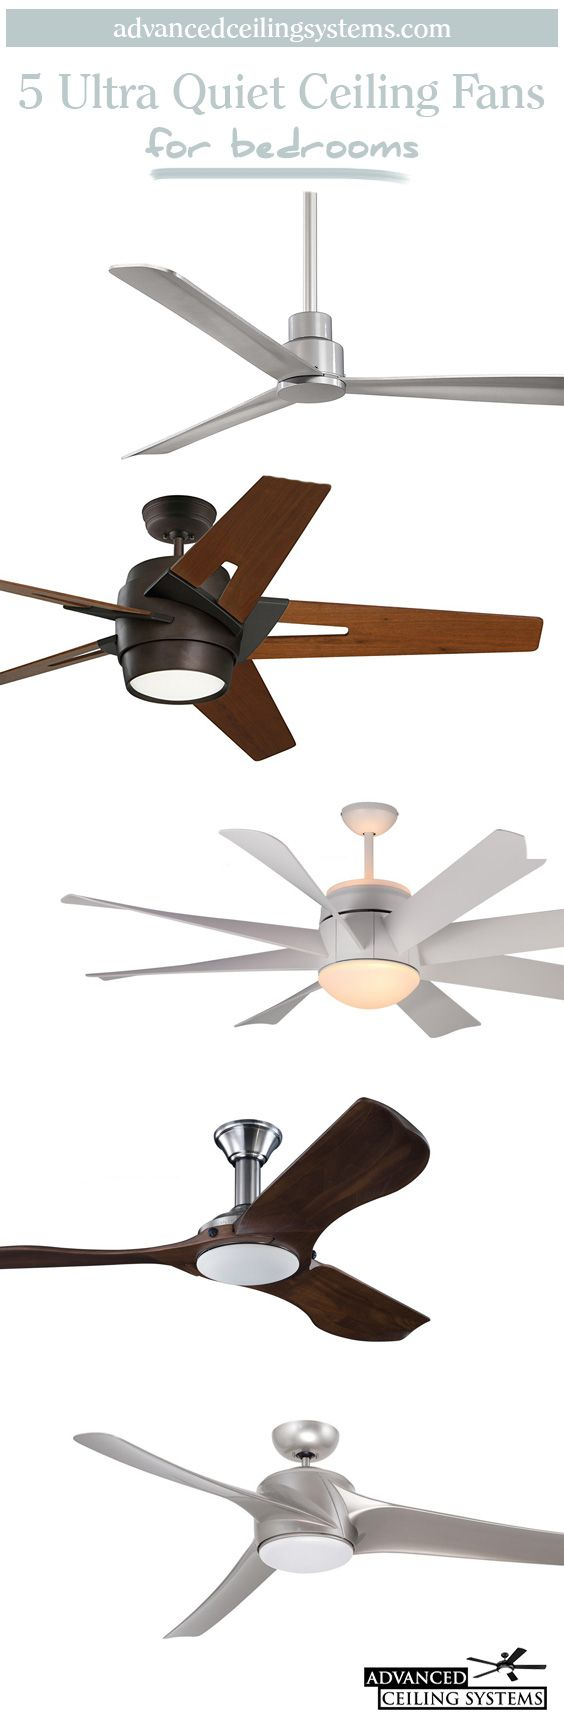 Wondering what is the quietest ceiling fan model for your bedroom? We explore the best quiet ceiling fans on the market today and where to buy them. Find the best bedroom ceiling fan.